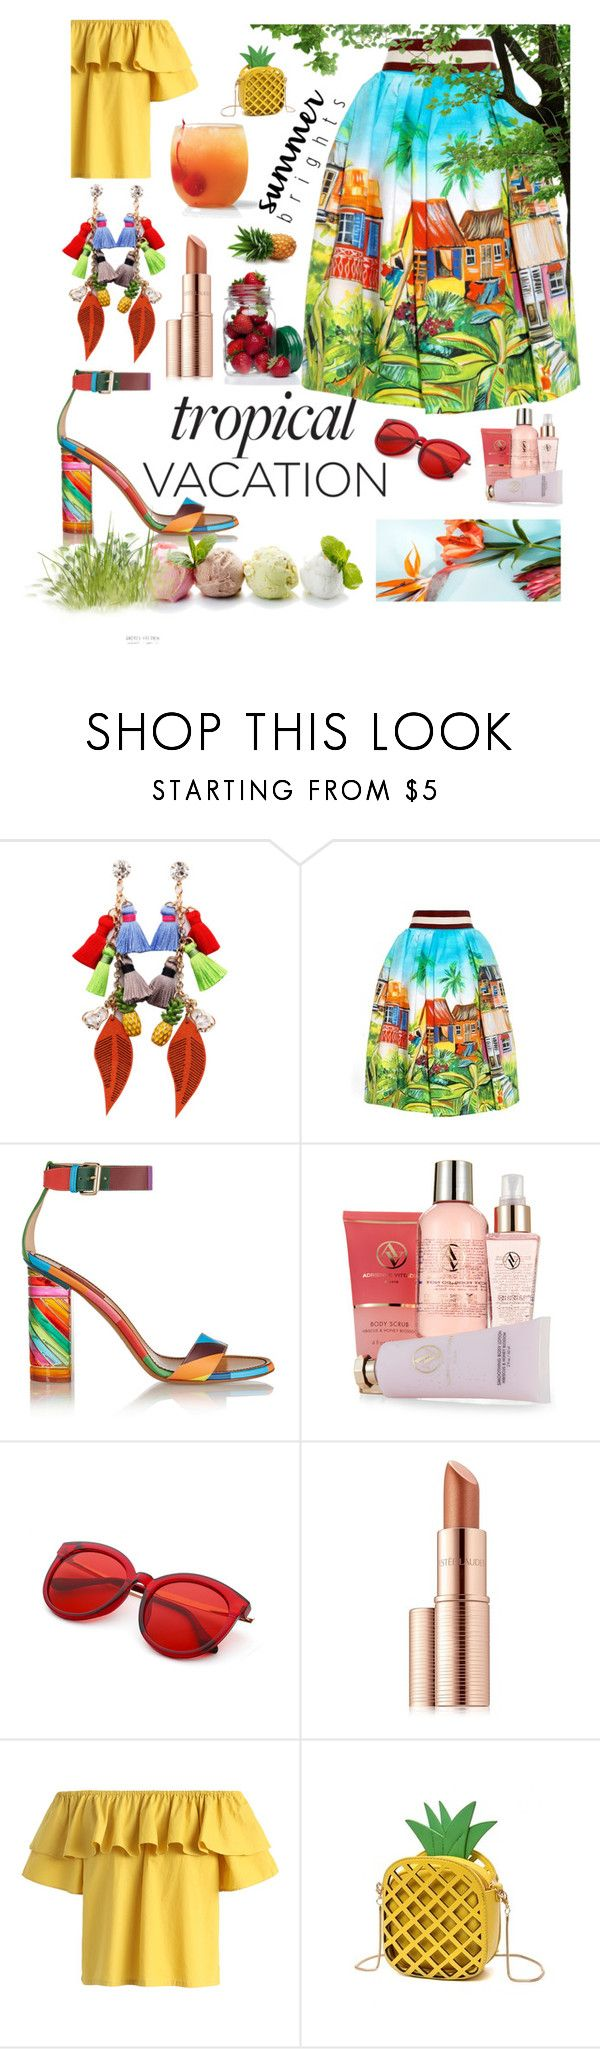 """Tropics Vacay"" by essentiallyessence on Polyvore featuring Stella Jean, Valentino, Massimo Dutti, Adrienne Vittadini, Estée Lauder and Chicwish"